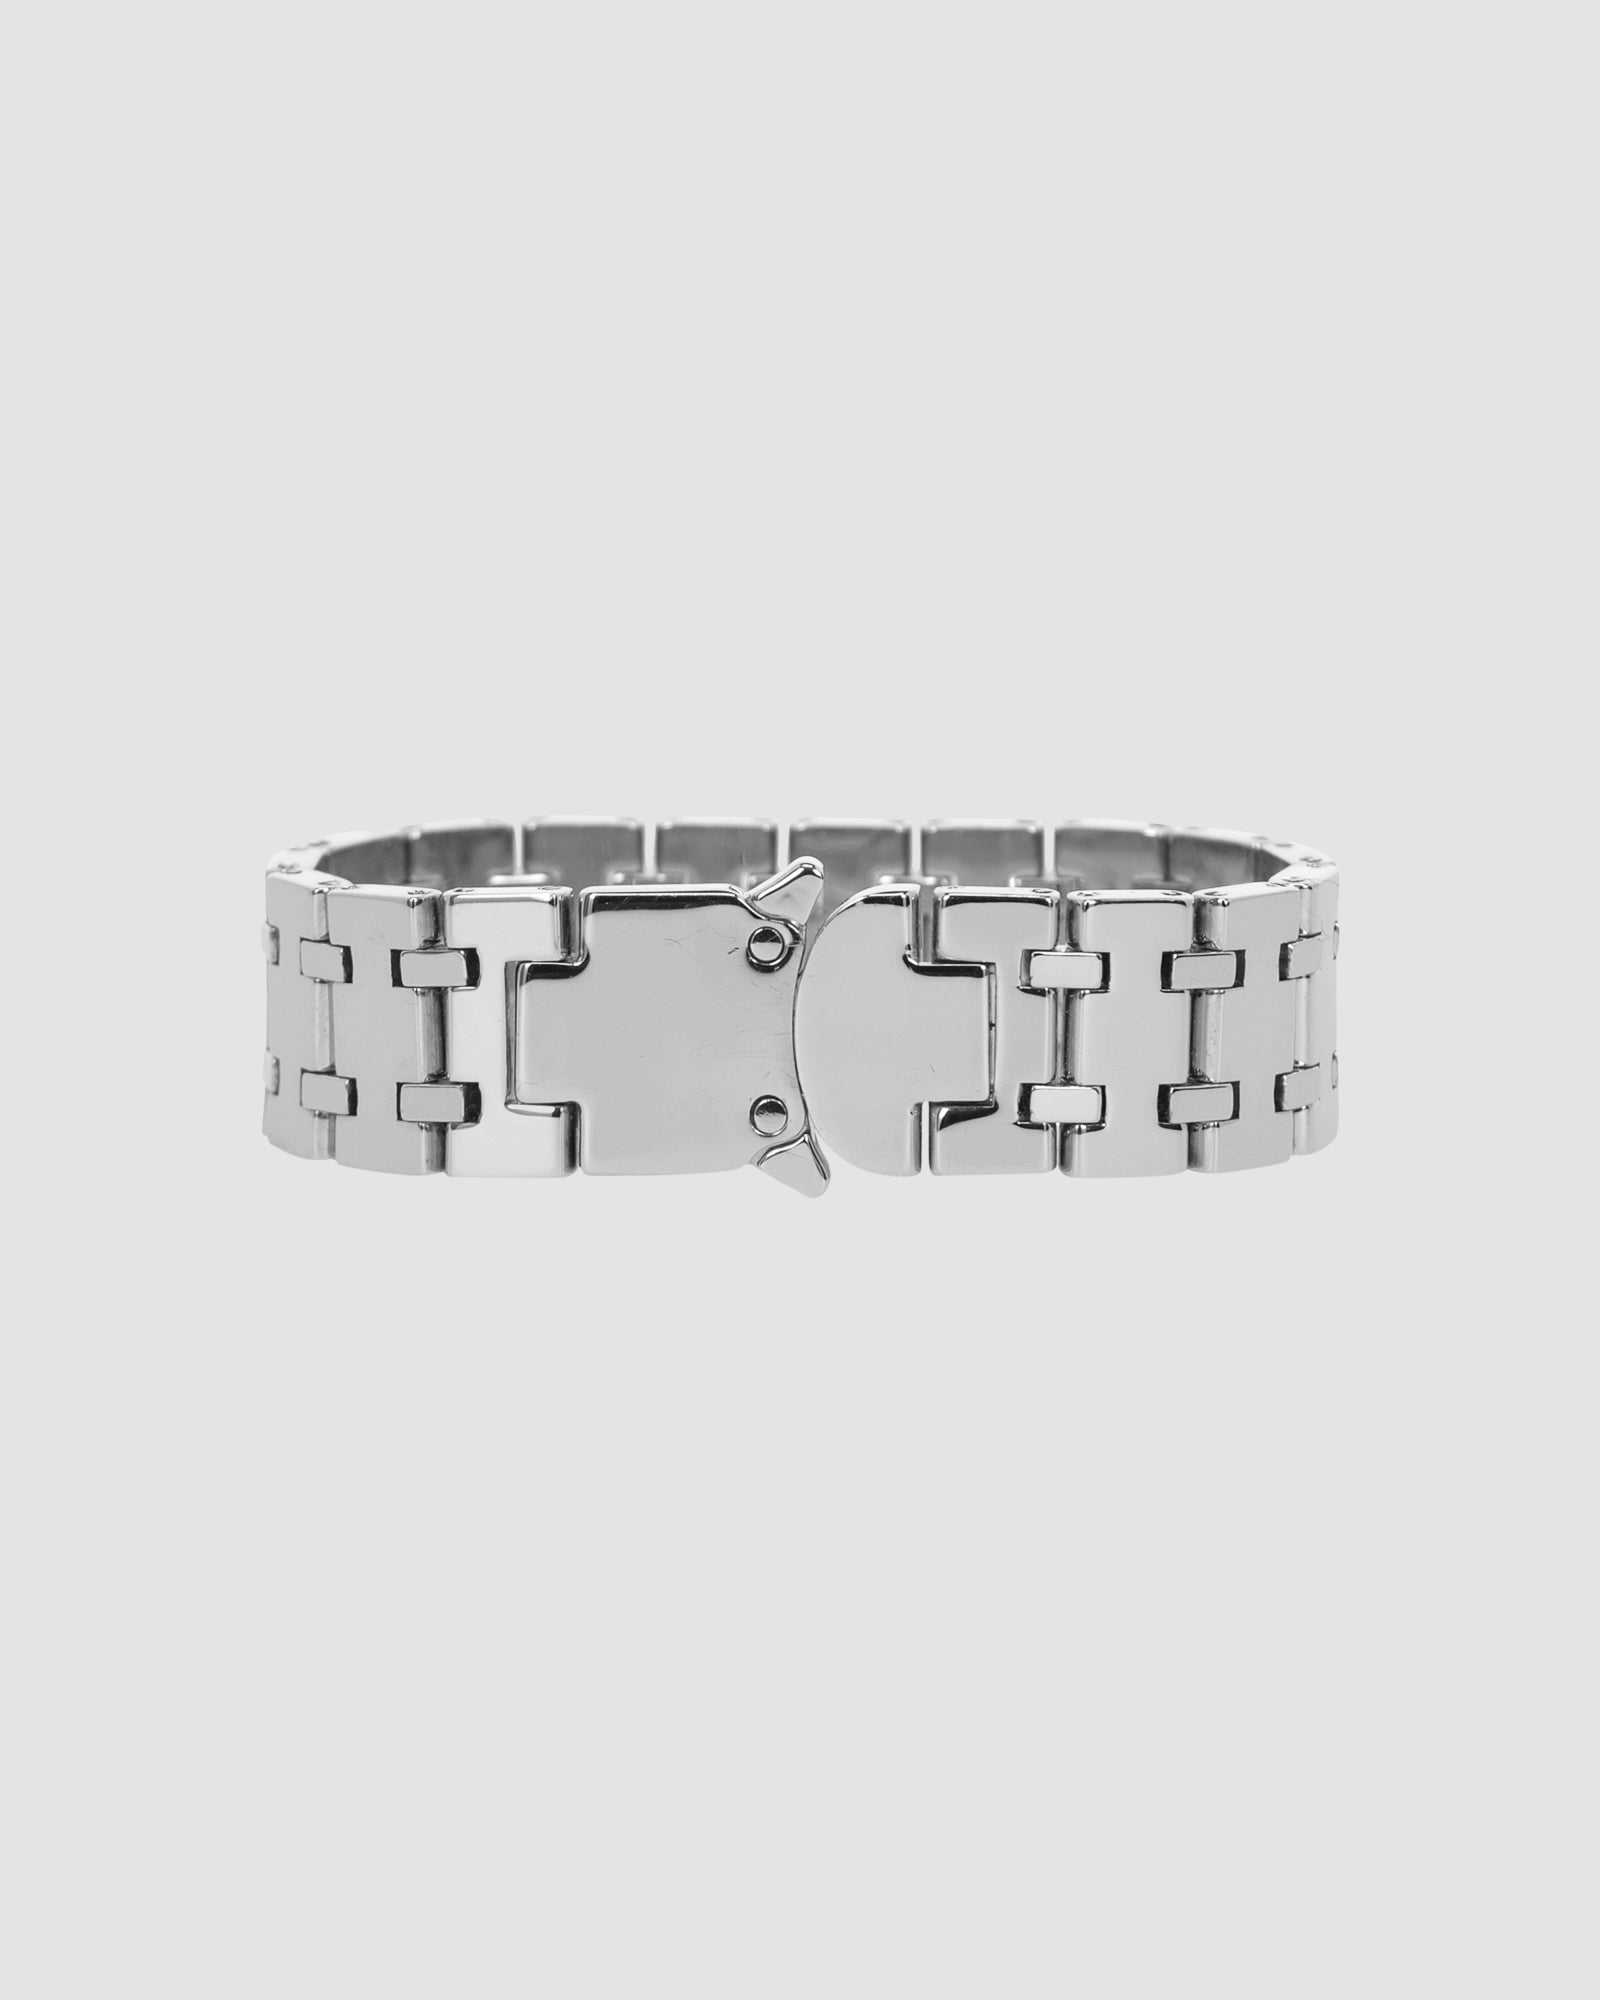 1017 ALYX 9SM | ROYAL OAK BRACELET | Jewellery | Accessories, Google Shopping, JEWELLERY, Man, S20, S20 Drop II, SILVER, UNISEX, Woman